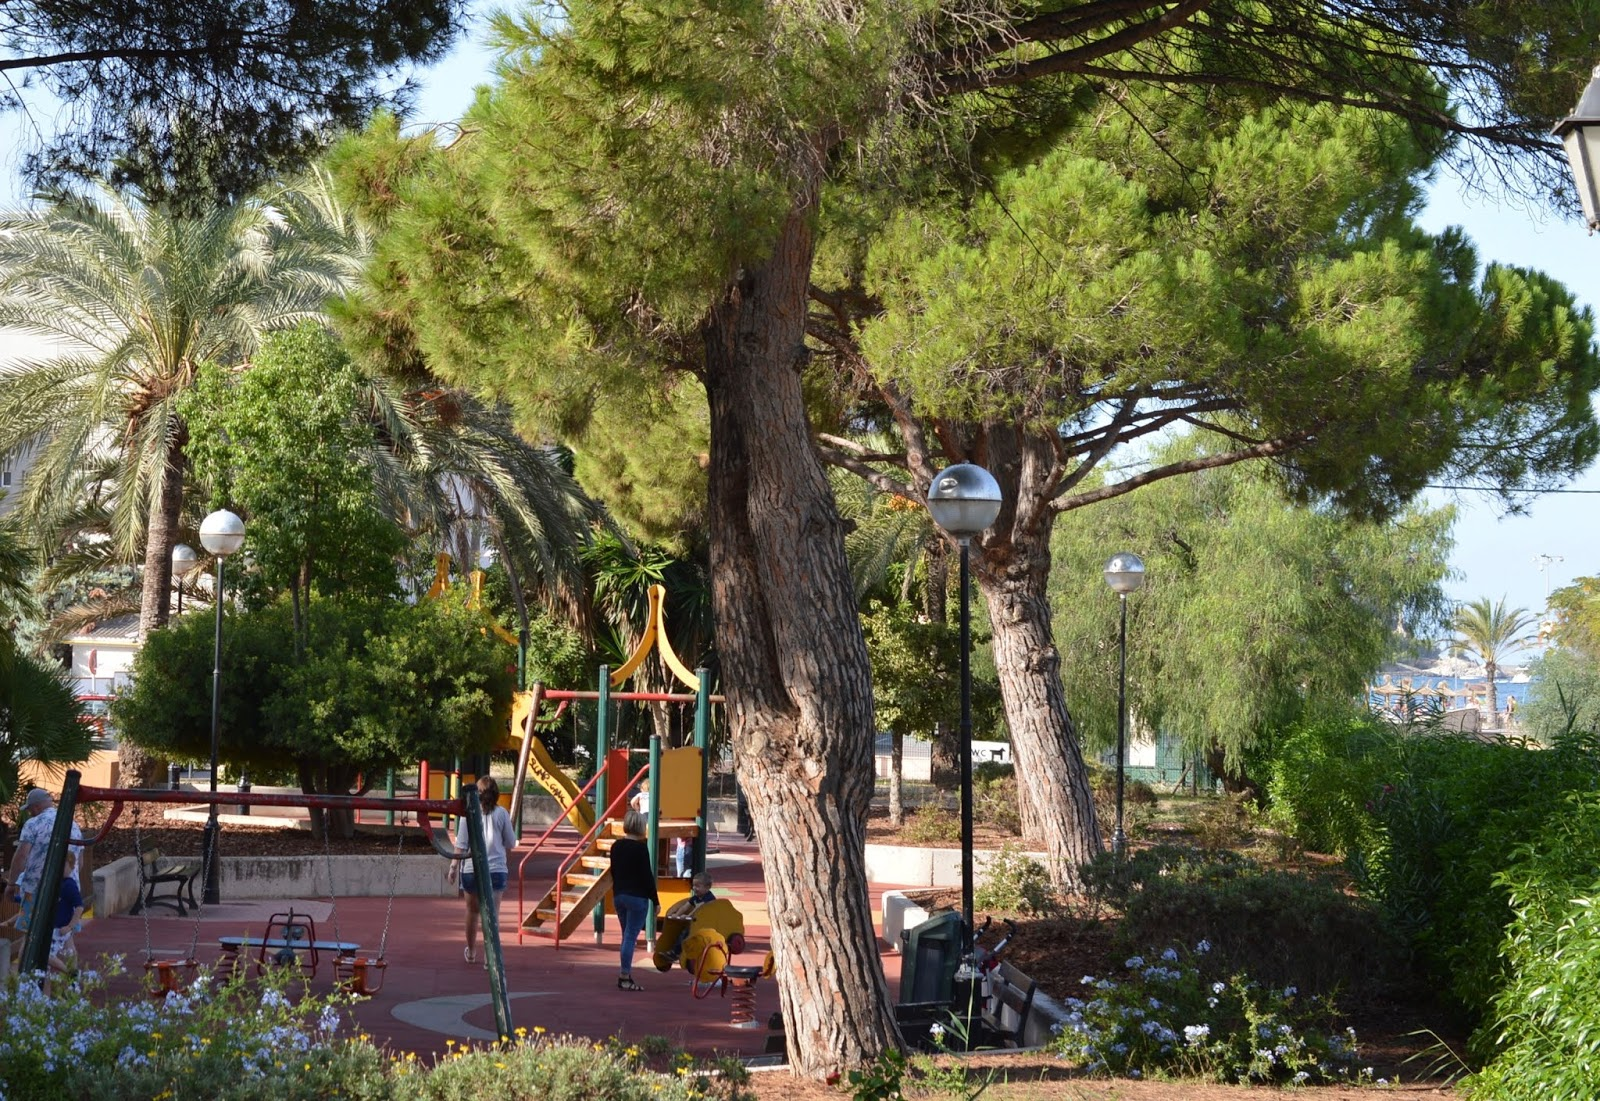 Pirates Village Santa Ponsa | Jet 2 Holidays Review  - Santa Ponsa park